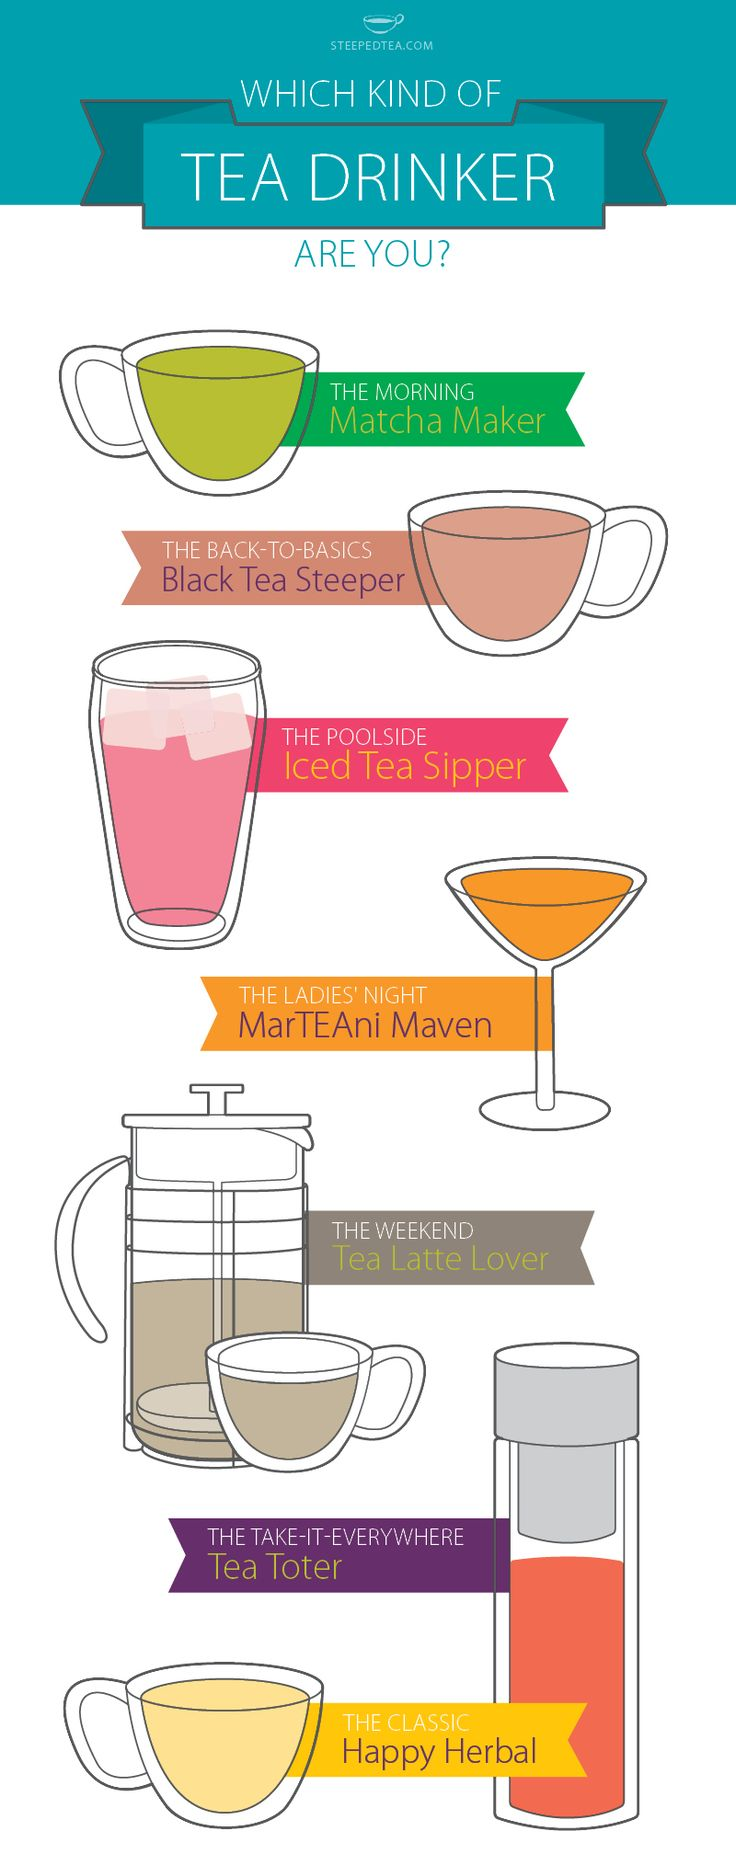 What kind of tea drinker are you? All of the above? That's okay, too!